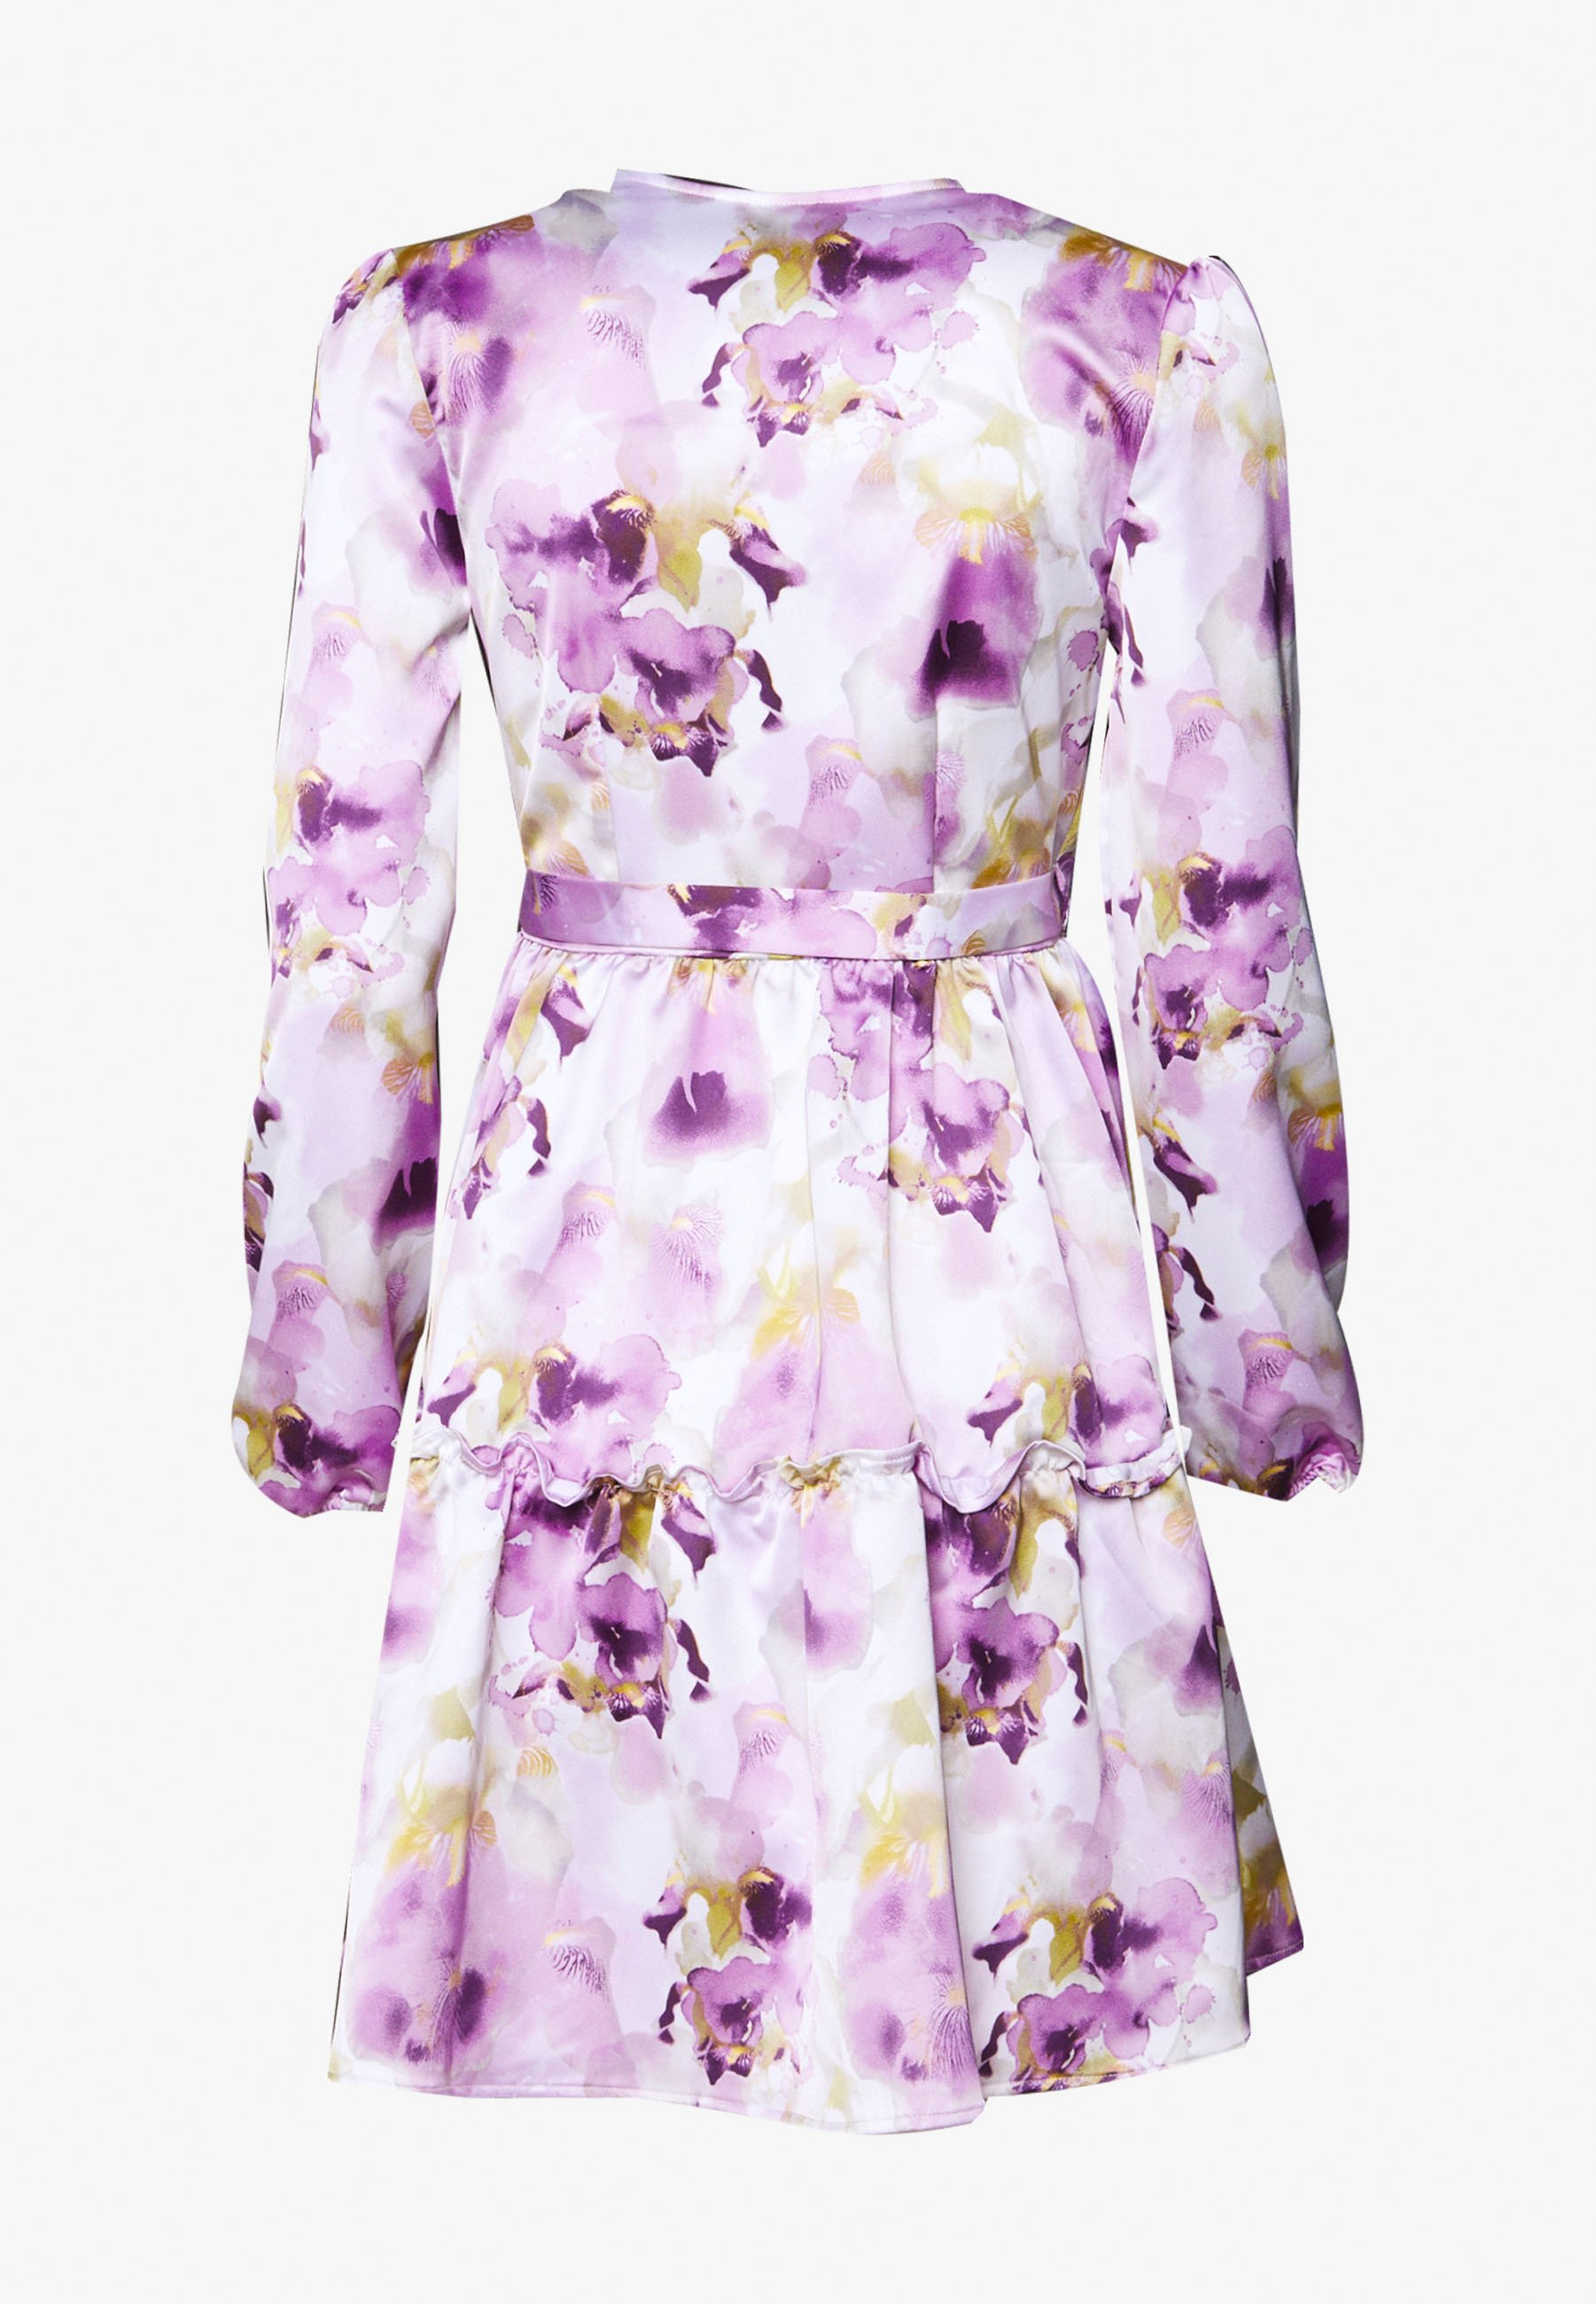 Monki Molly Dress - Vestito Estivo Lilac orSbPDE